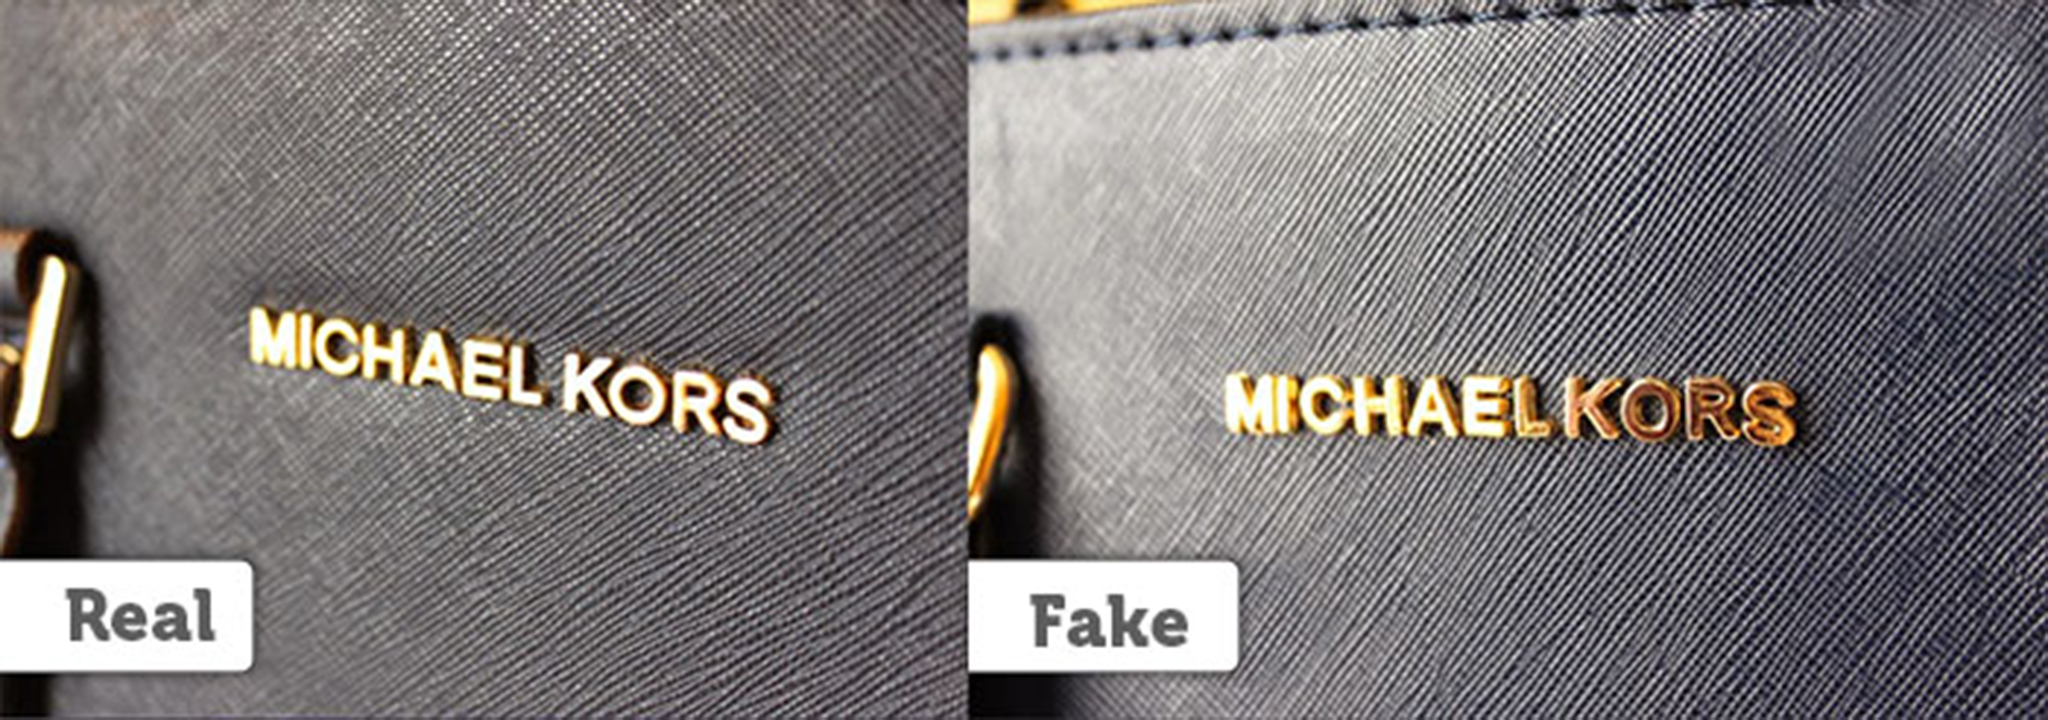 Michael Kors Bags From 03 How To Tell A Fake | Mount Mercy